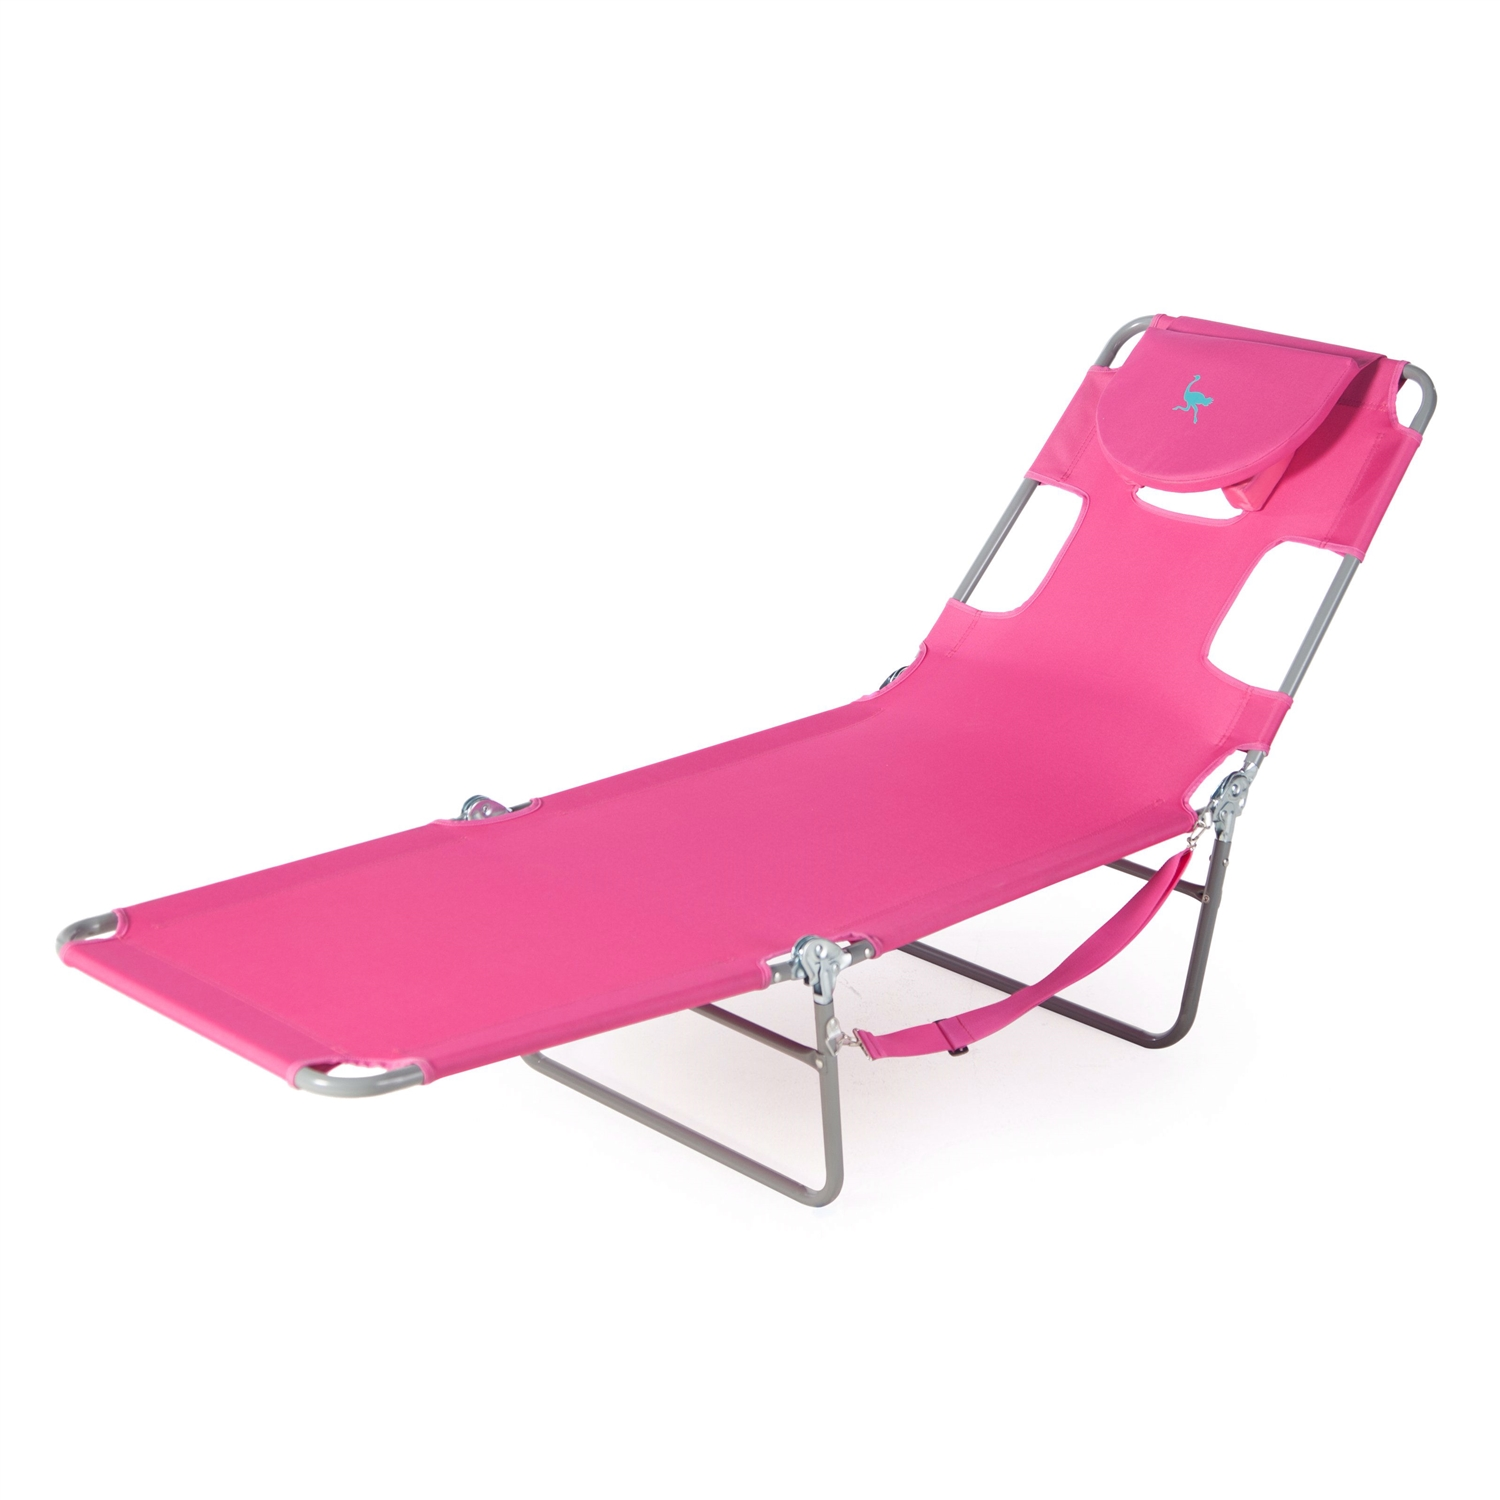 Beach Chairs Lounge Chairs For Your Beach Days